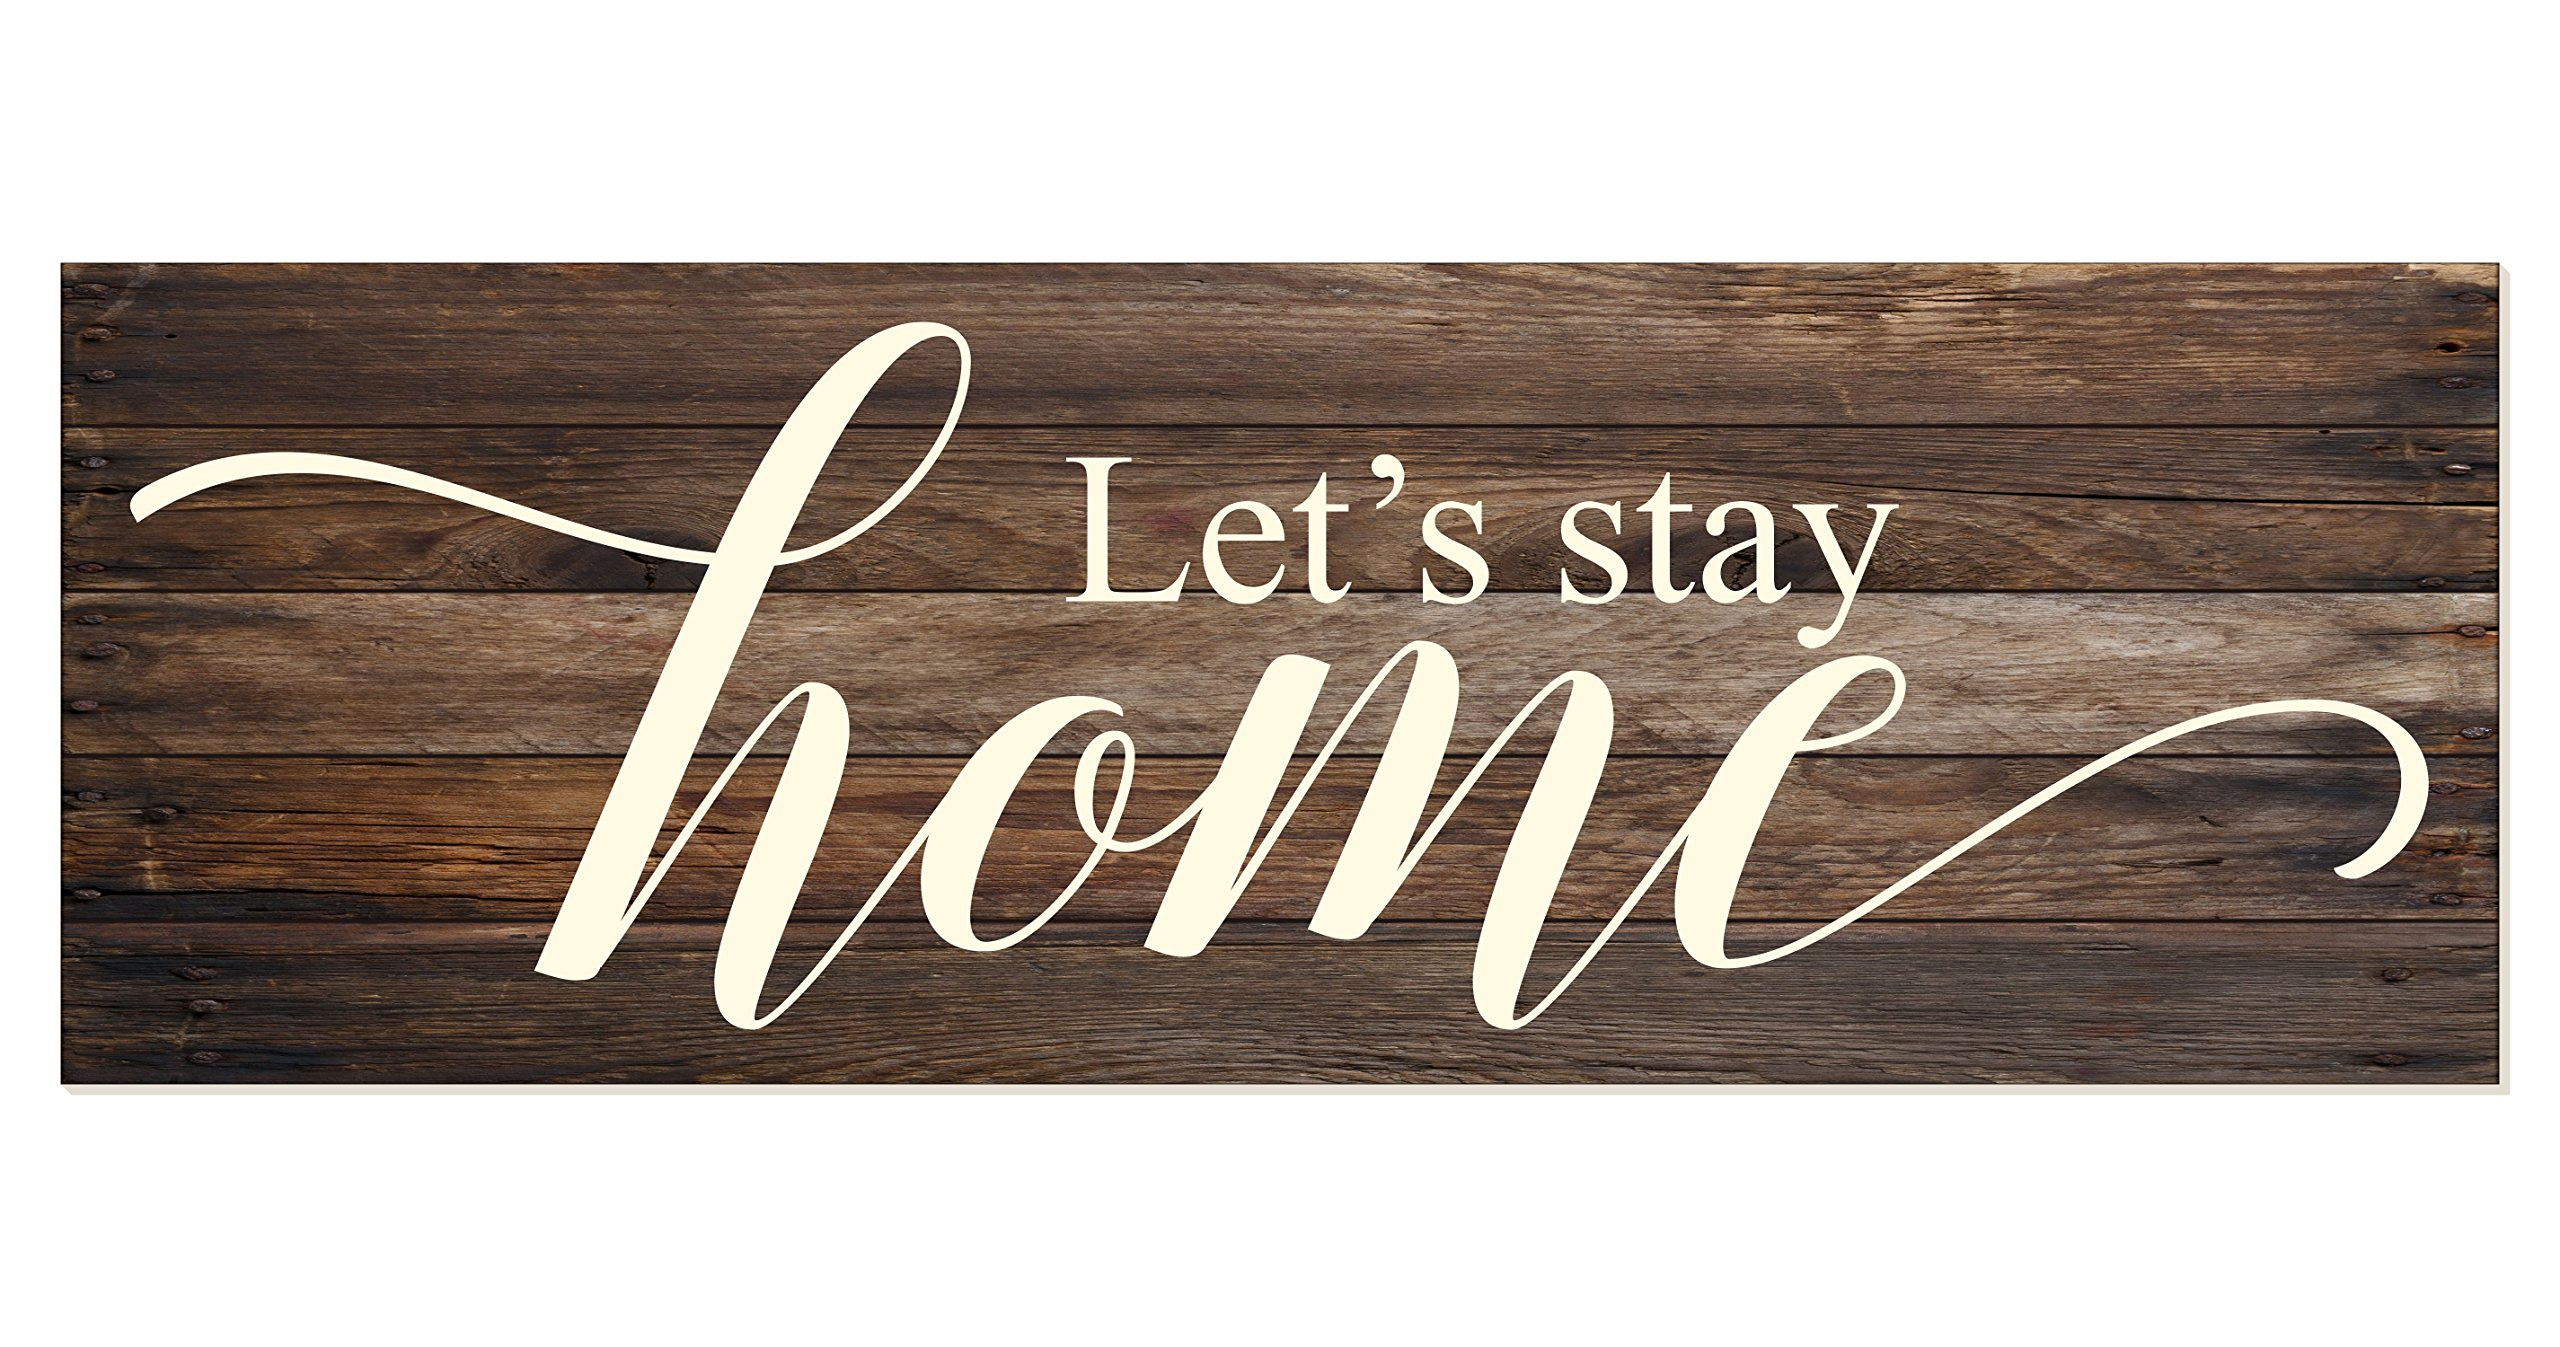 Let's Stay Home Rustic Wood Wall Sign 6x18 (Brown)